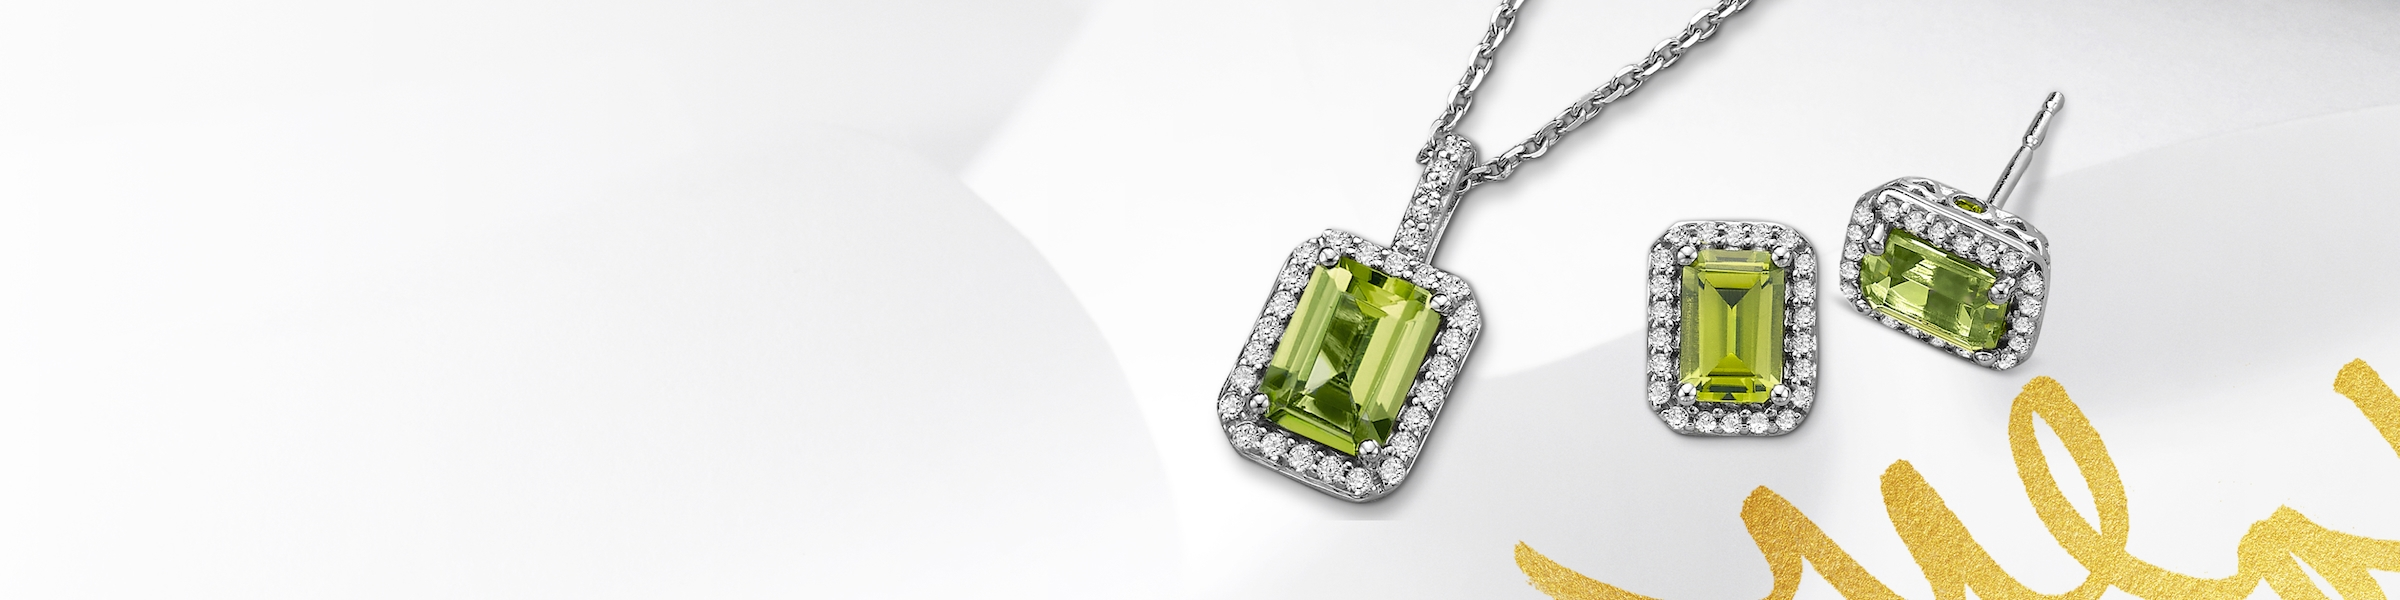 Peridot earrings and necklace set in white gold. Shop all peridot jewelry at Jared.